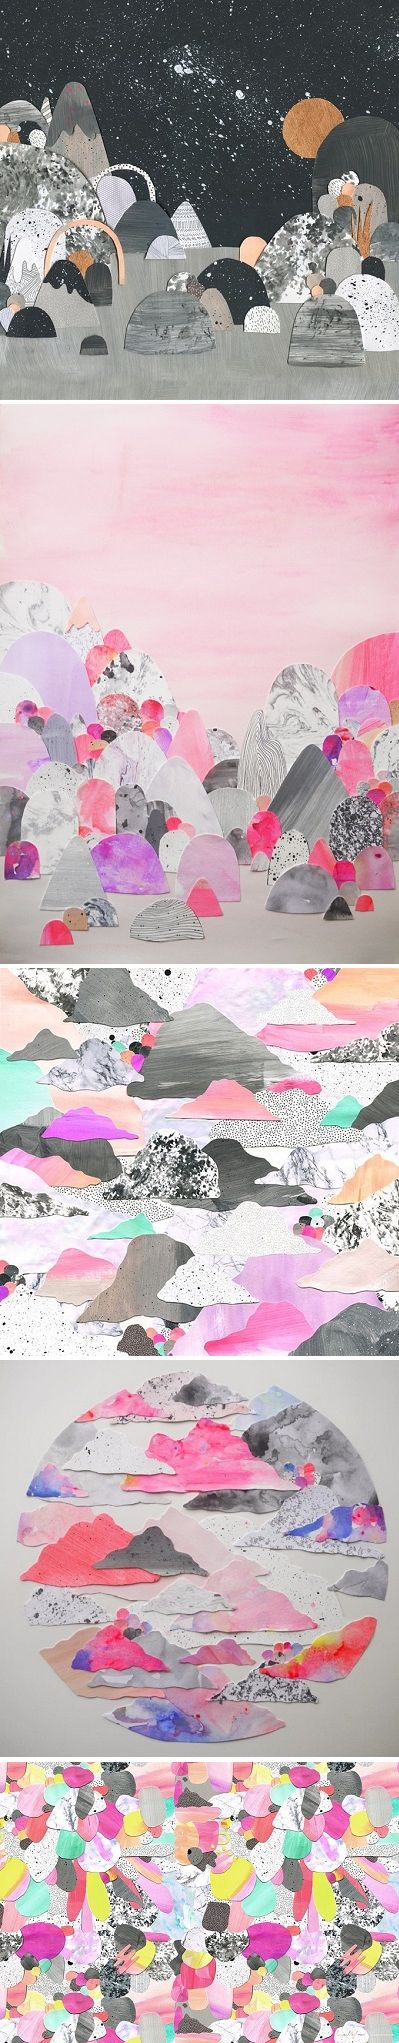 Collages by Laura Blythman / on the Blog!